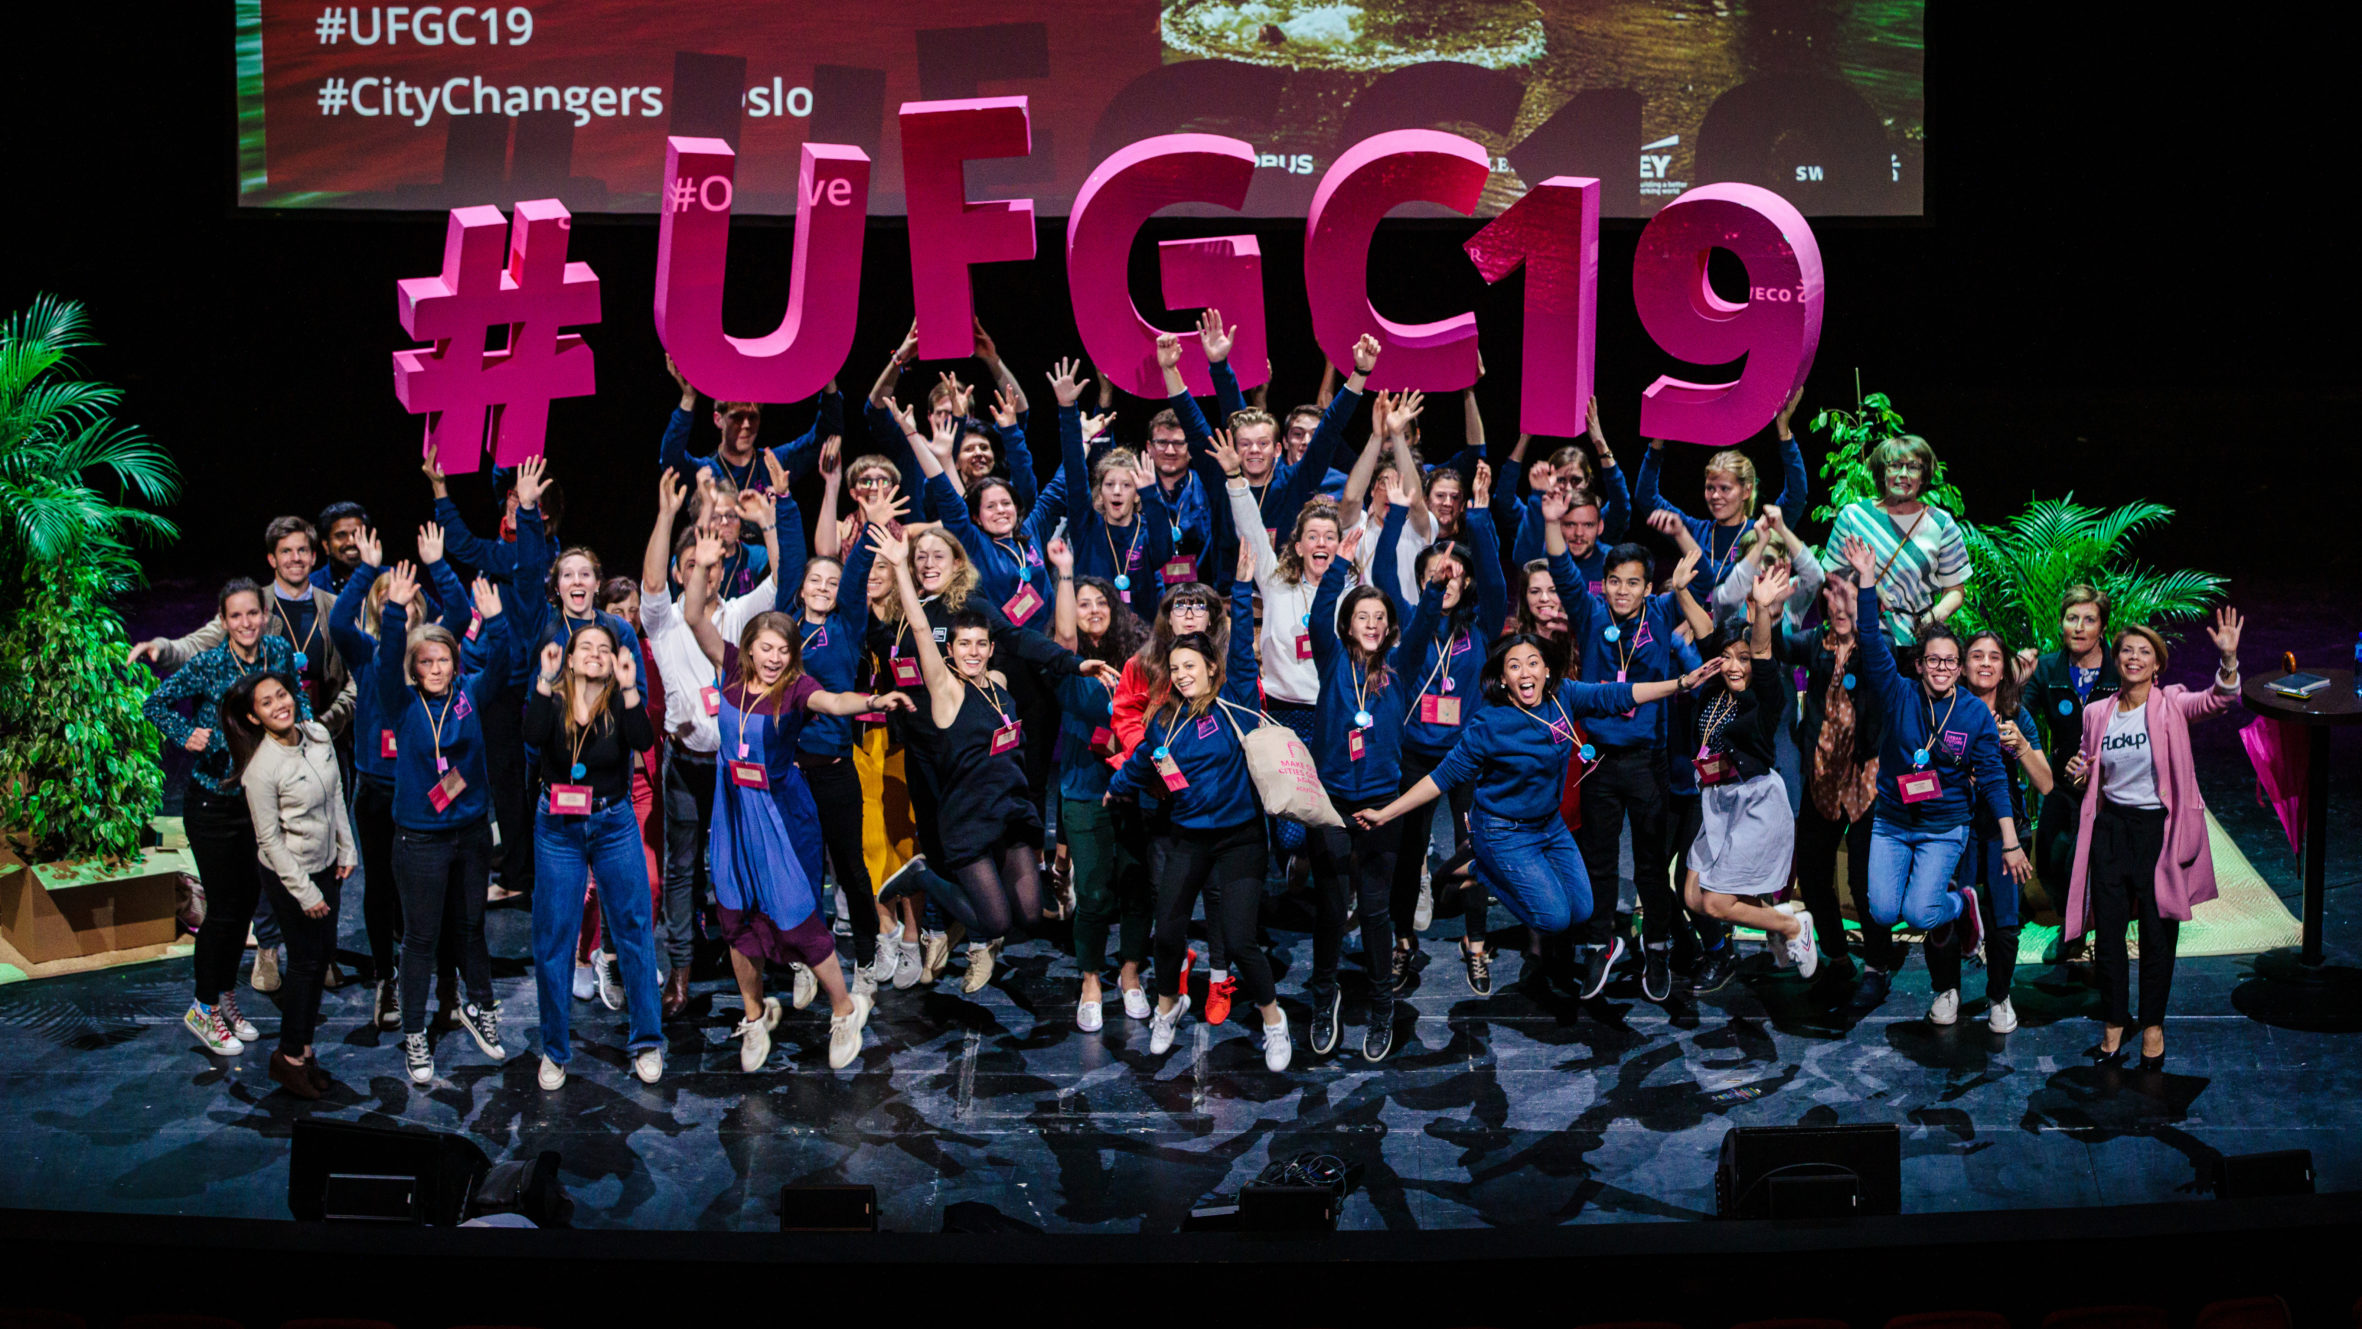 The team behind UFGC19 celebrate an inspiring few days in Oslo. Photo: Geir Anders Rybakken Ørslien'.